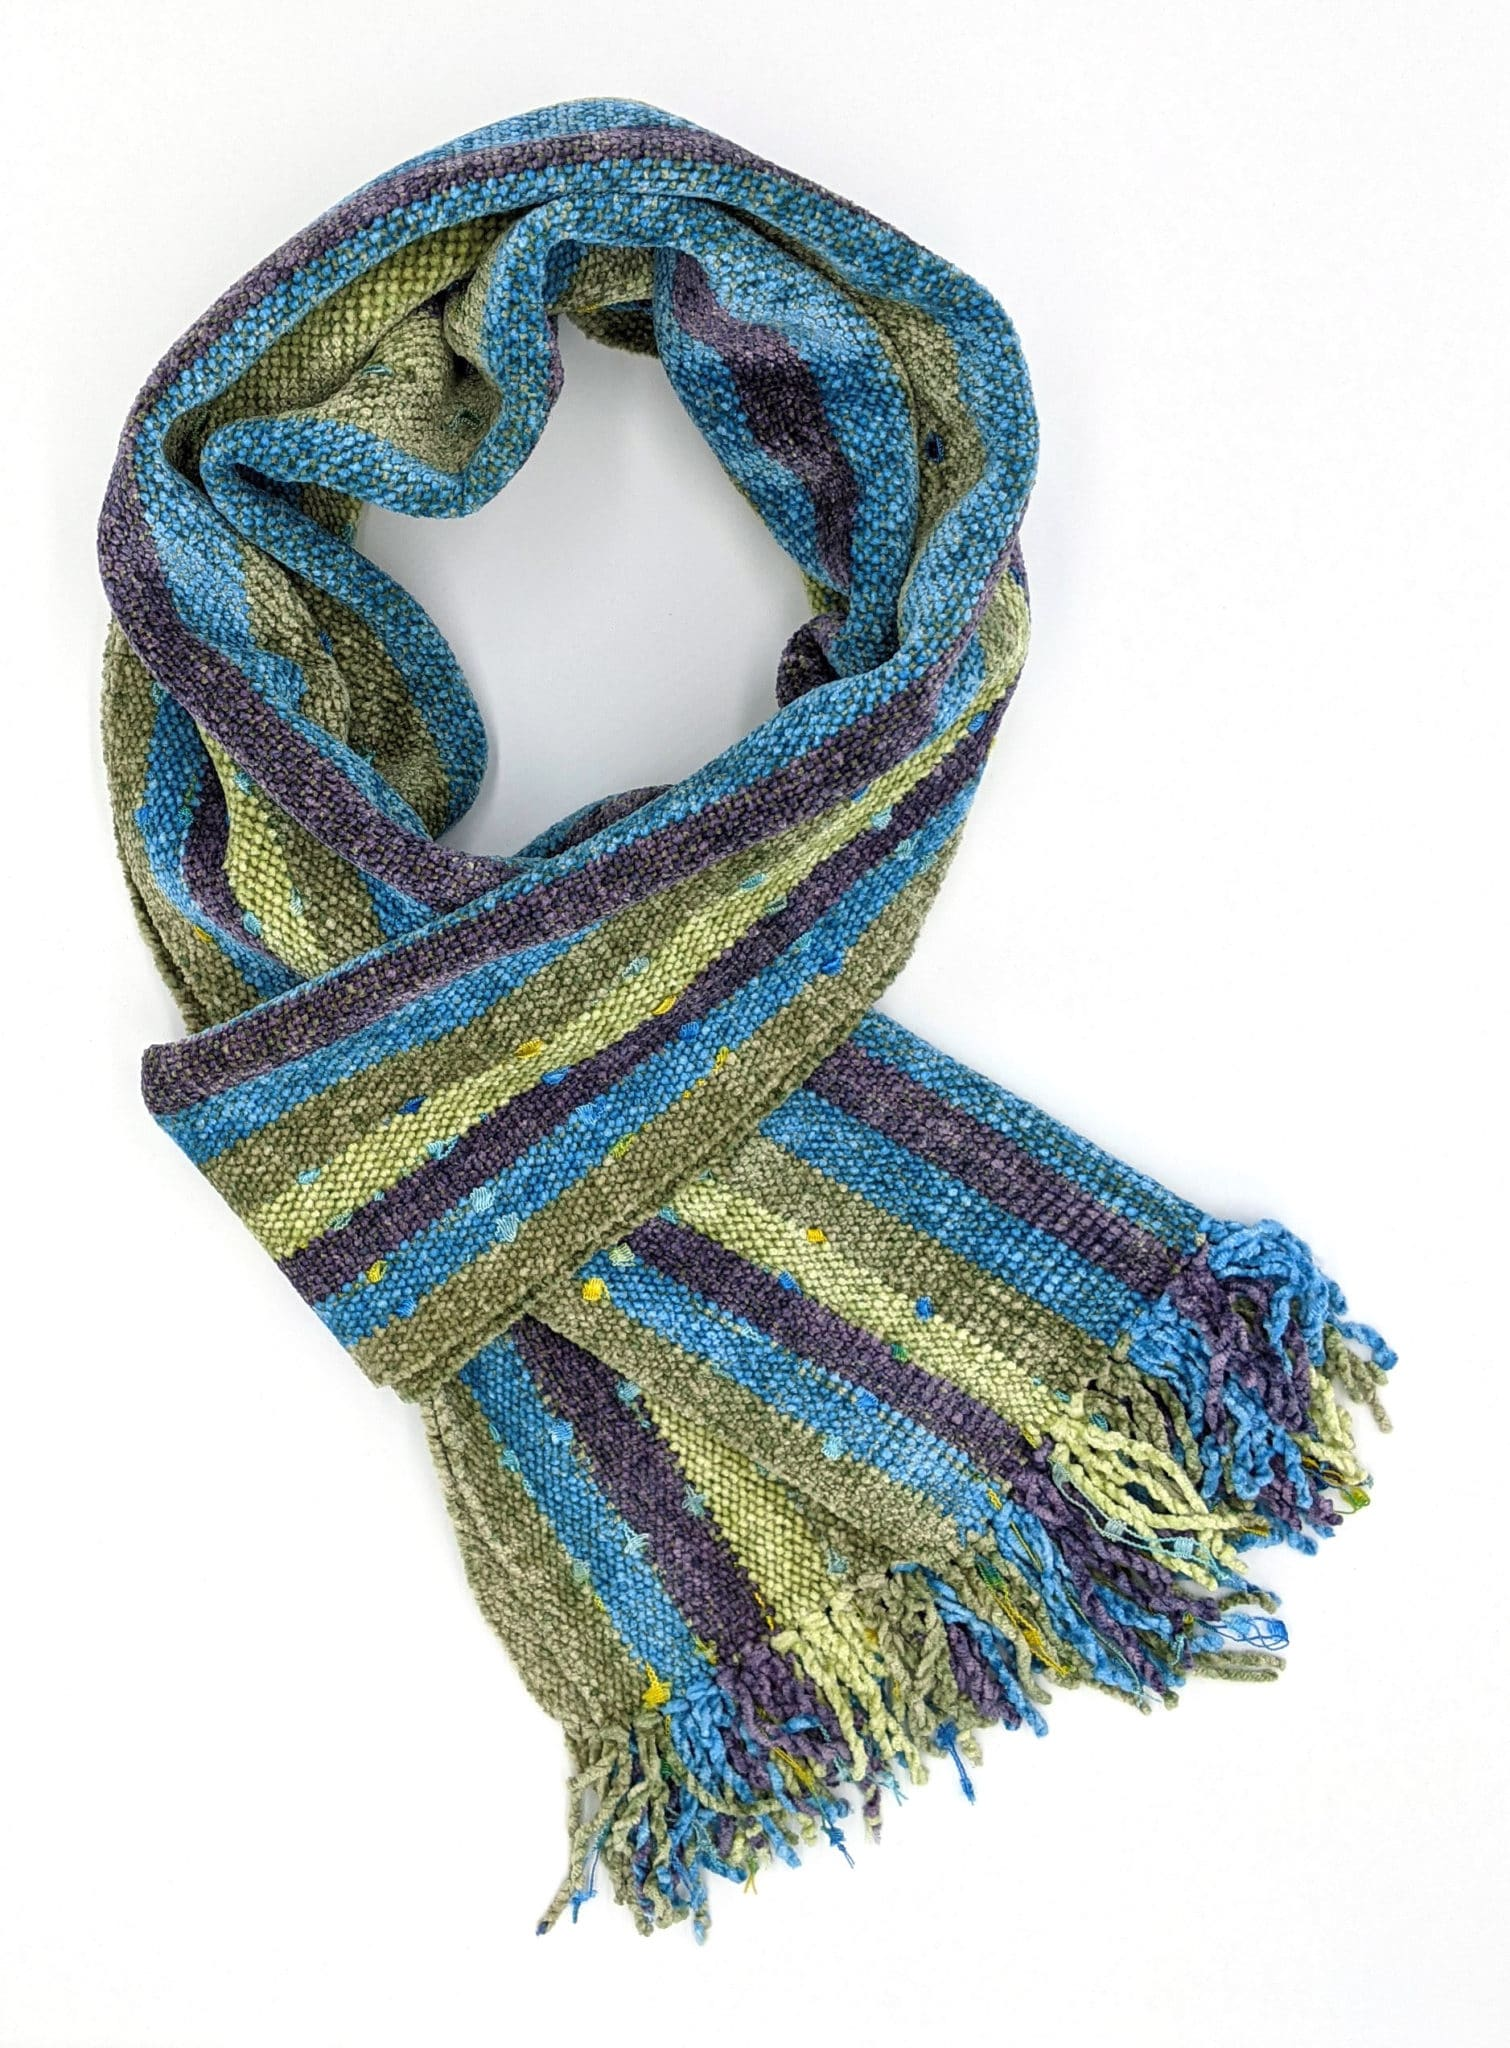 Lilac, Celestial Blue, Pale Green with Ornamental Yarn Accents - Bamboo Chenille Handwoven Scarf 8 x 68